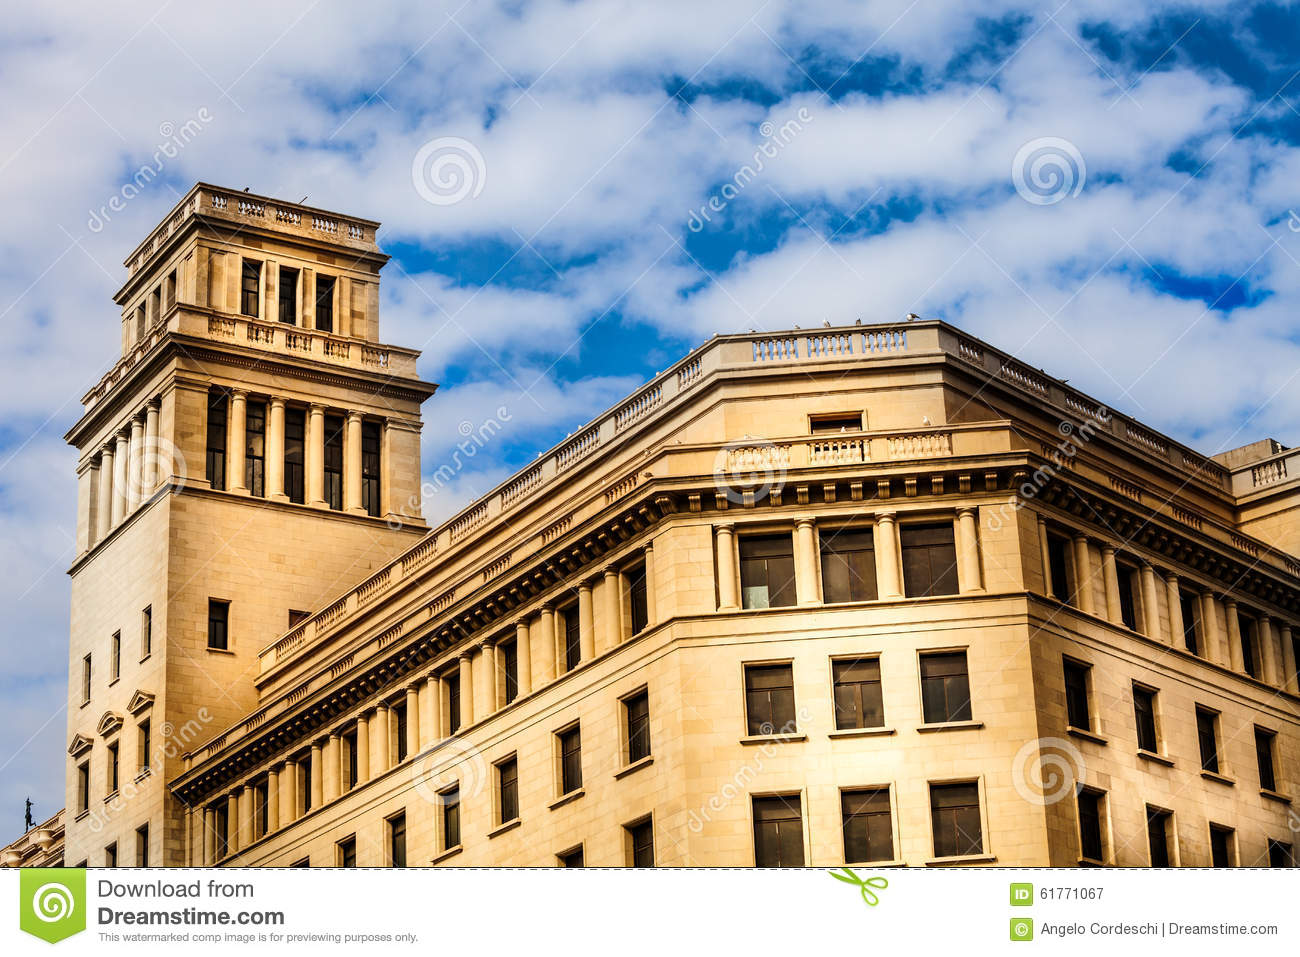 Building With A Tower And Domed Roof. Spanish Architecture. Stock.